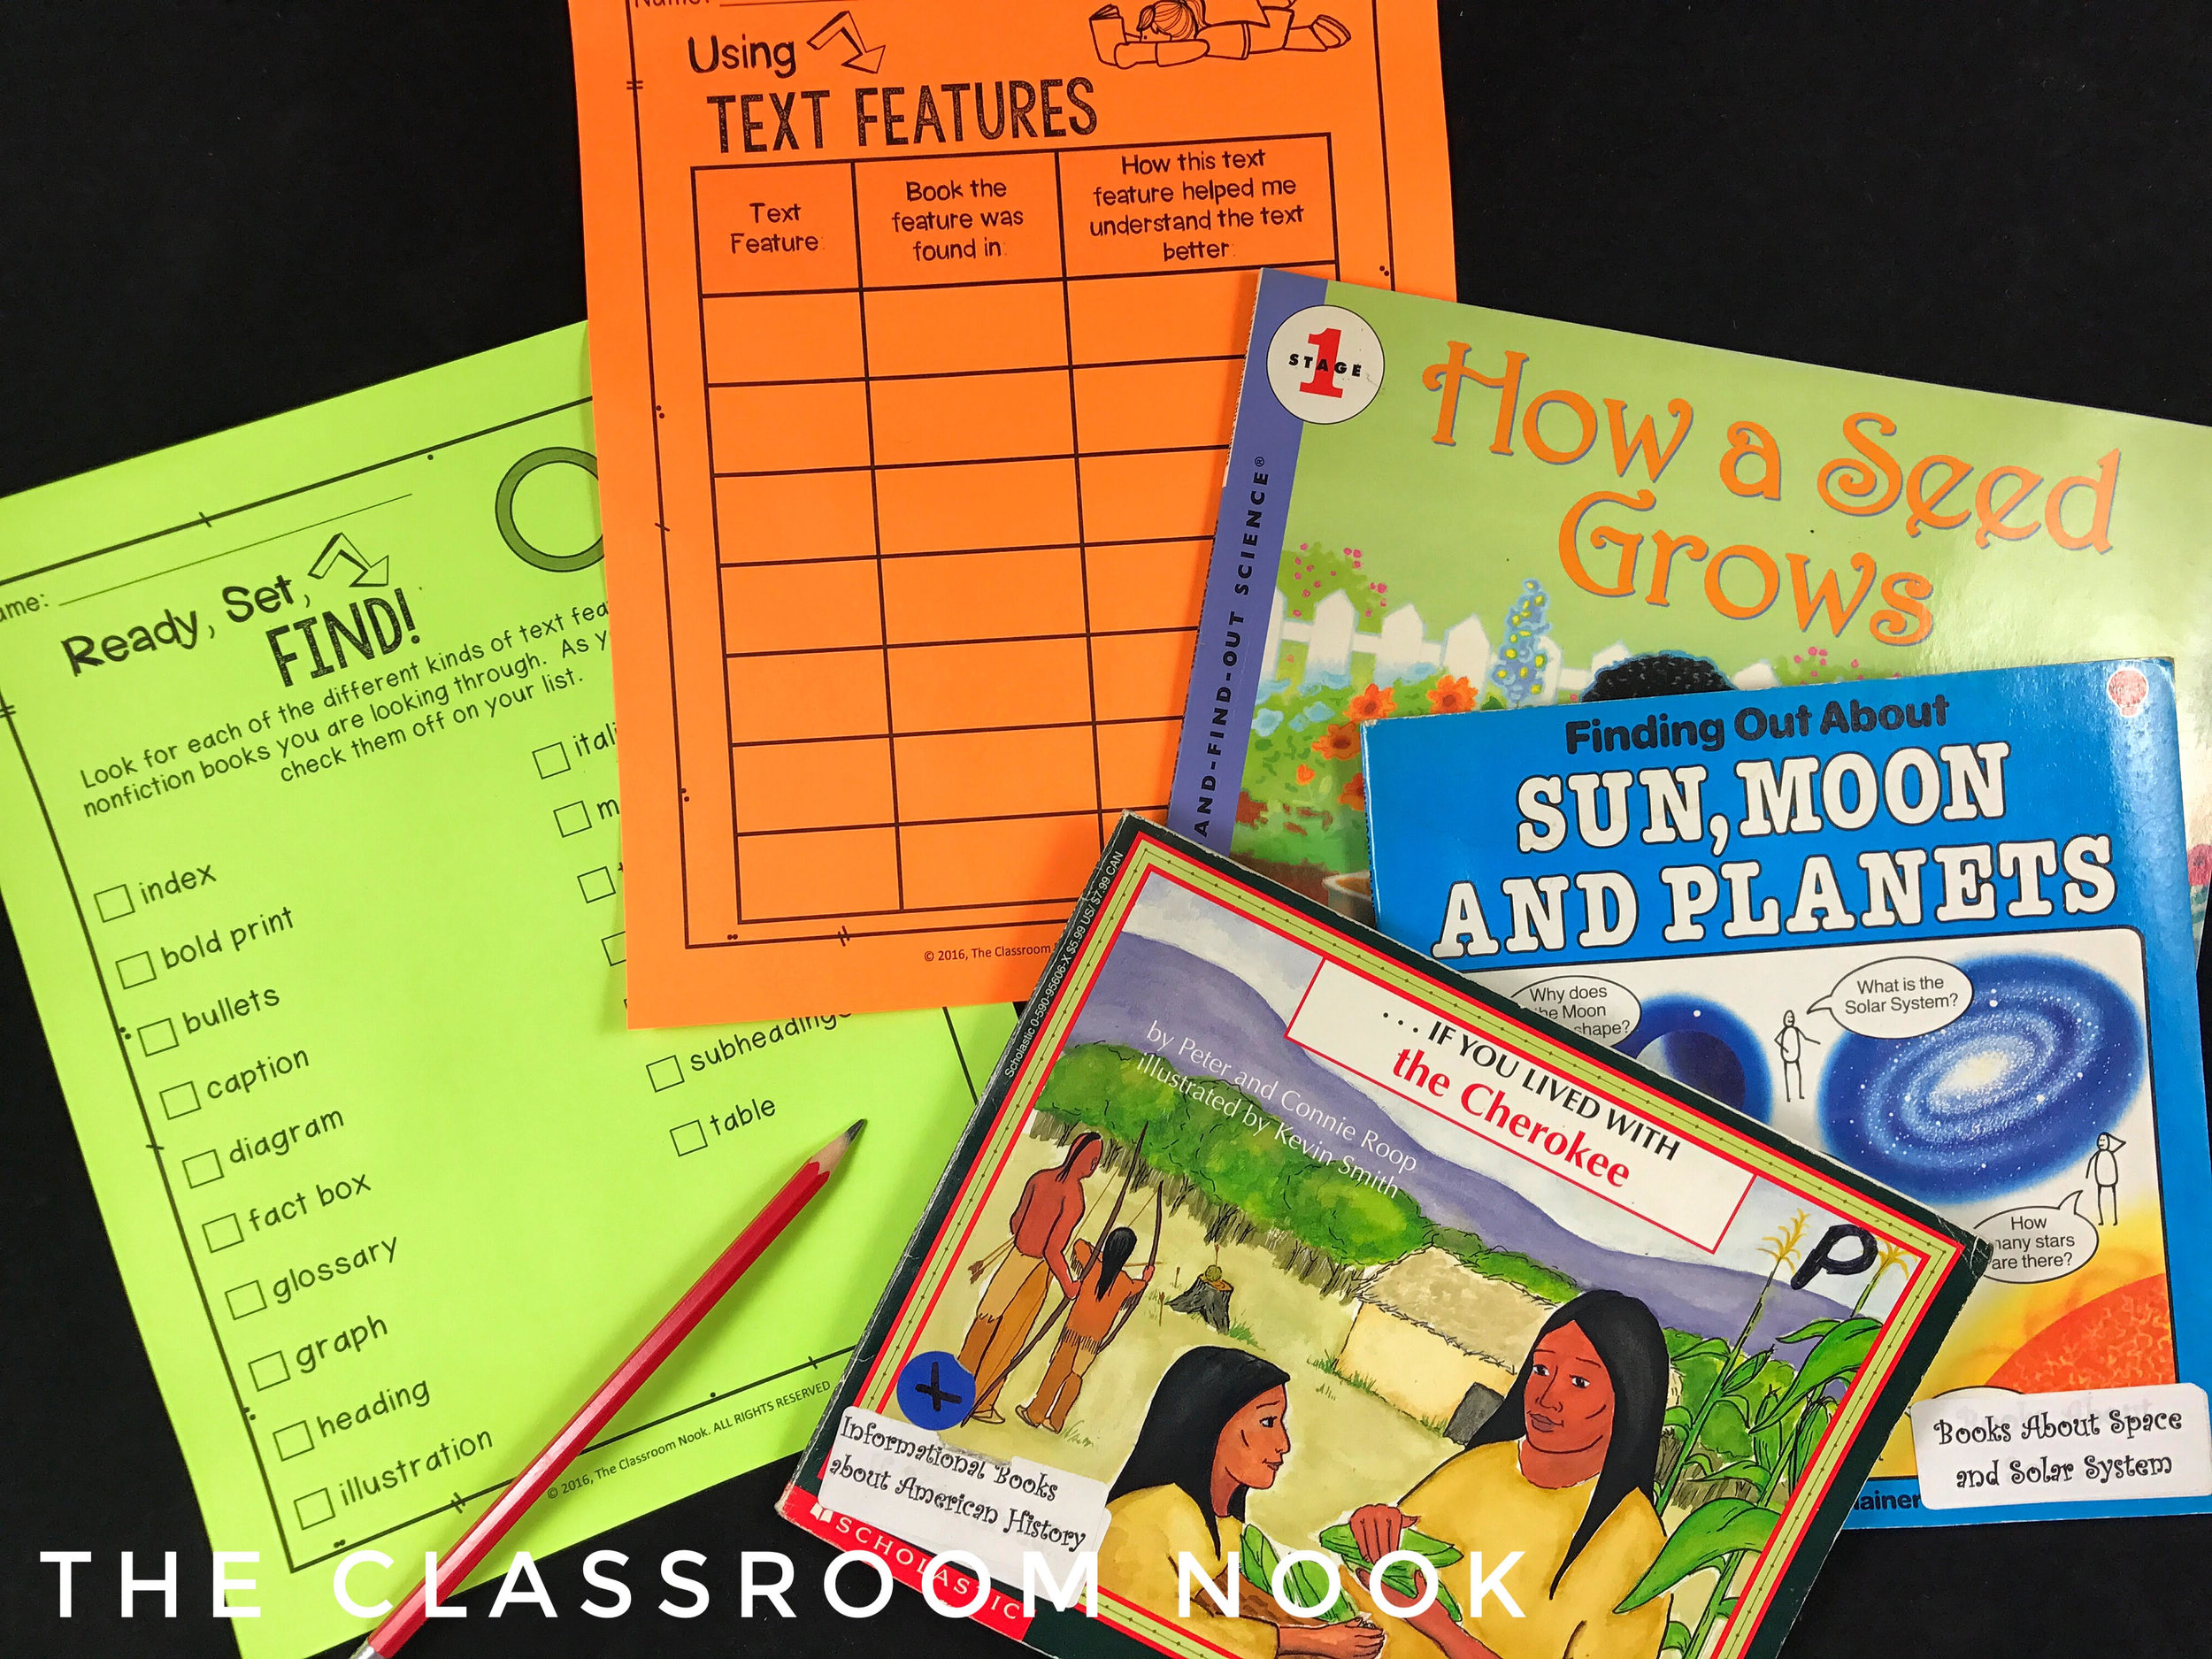 A nonfiction text feature scavenger hunt is a great way to help students learn how to quickly identify the nonfiction text features in a book that help them better understand the text.